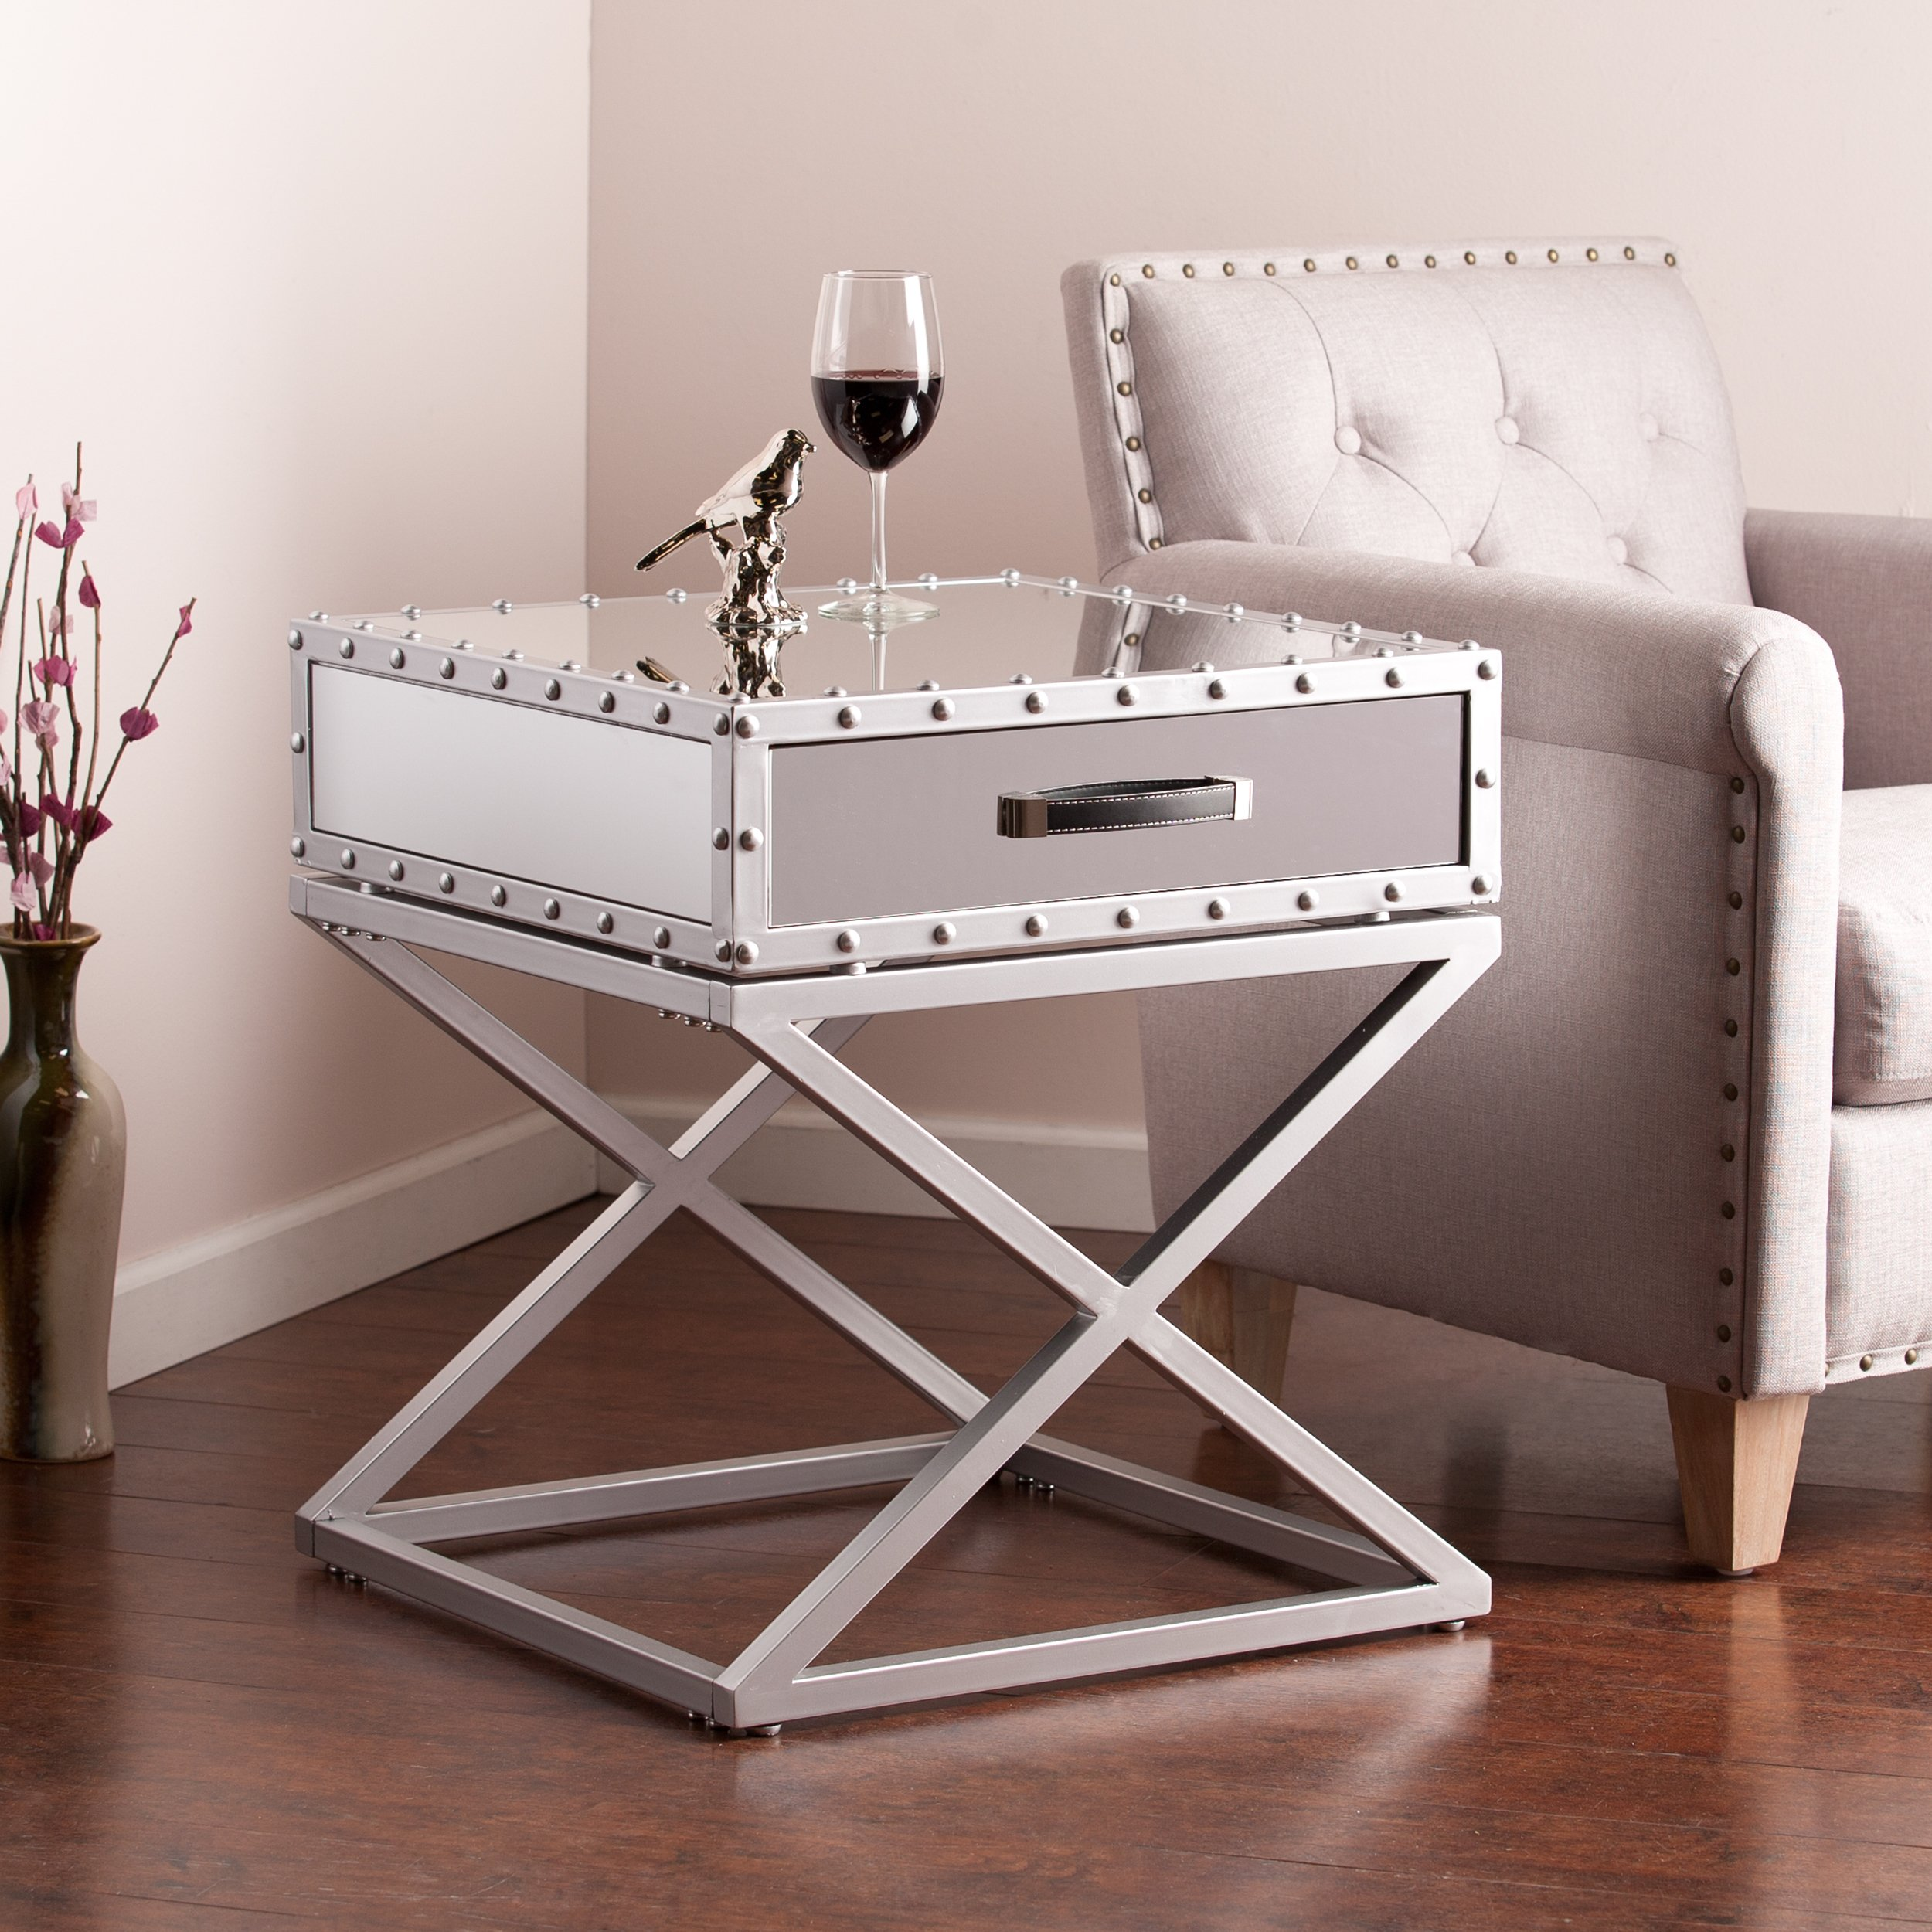 upton home carollton industrial mirrored side end table harper blvd glam accent with drawer free shipping today natural wood tray top vanity chair target tall dining set iron